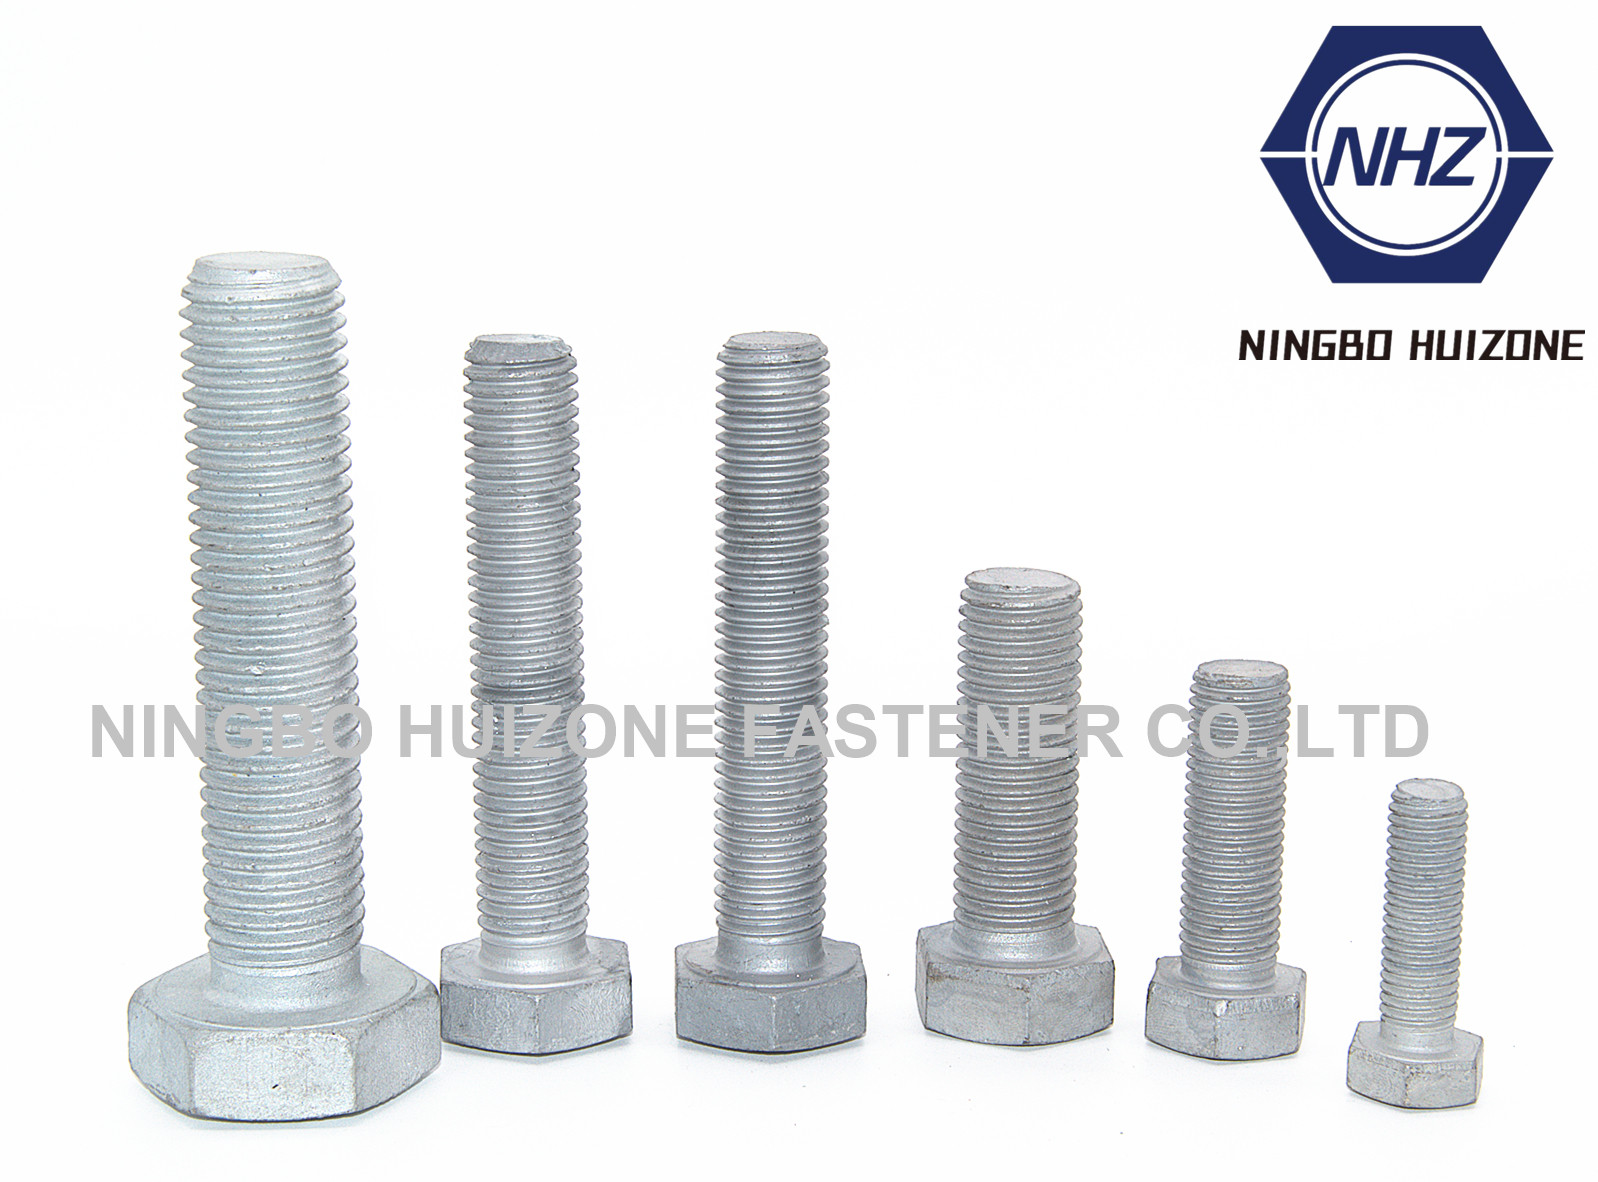 HDG DIN 933 CL 8.8 HEX BOLTS